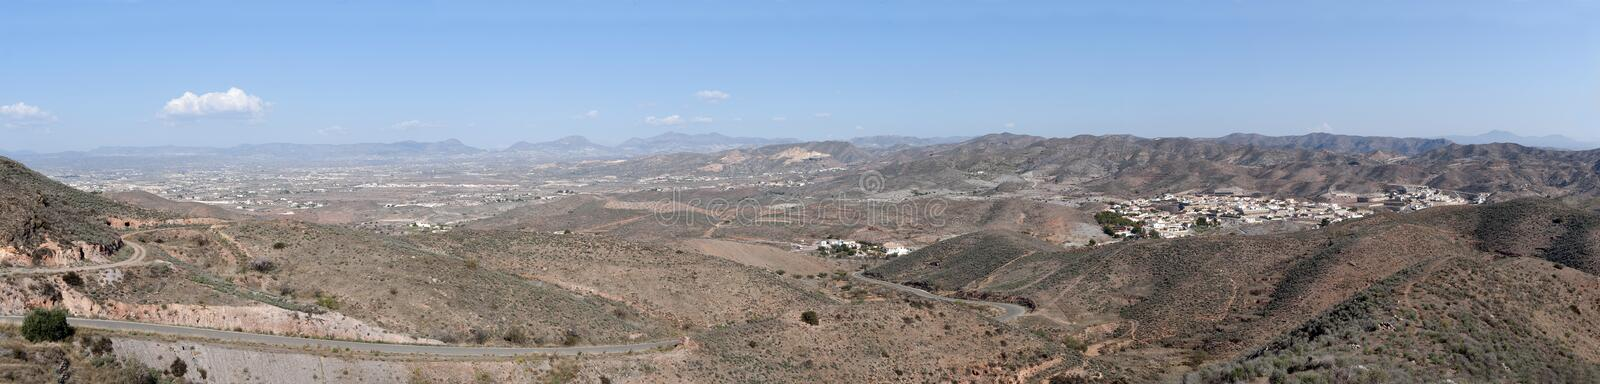 Download Panoramic View Over Limaria Village Stock Image - Image: 23626557